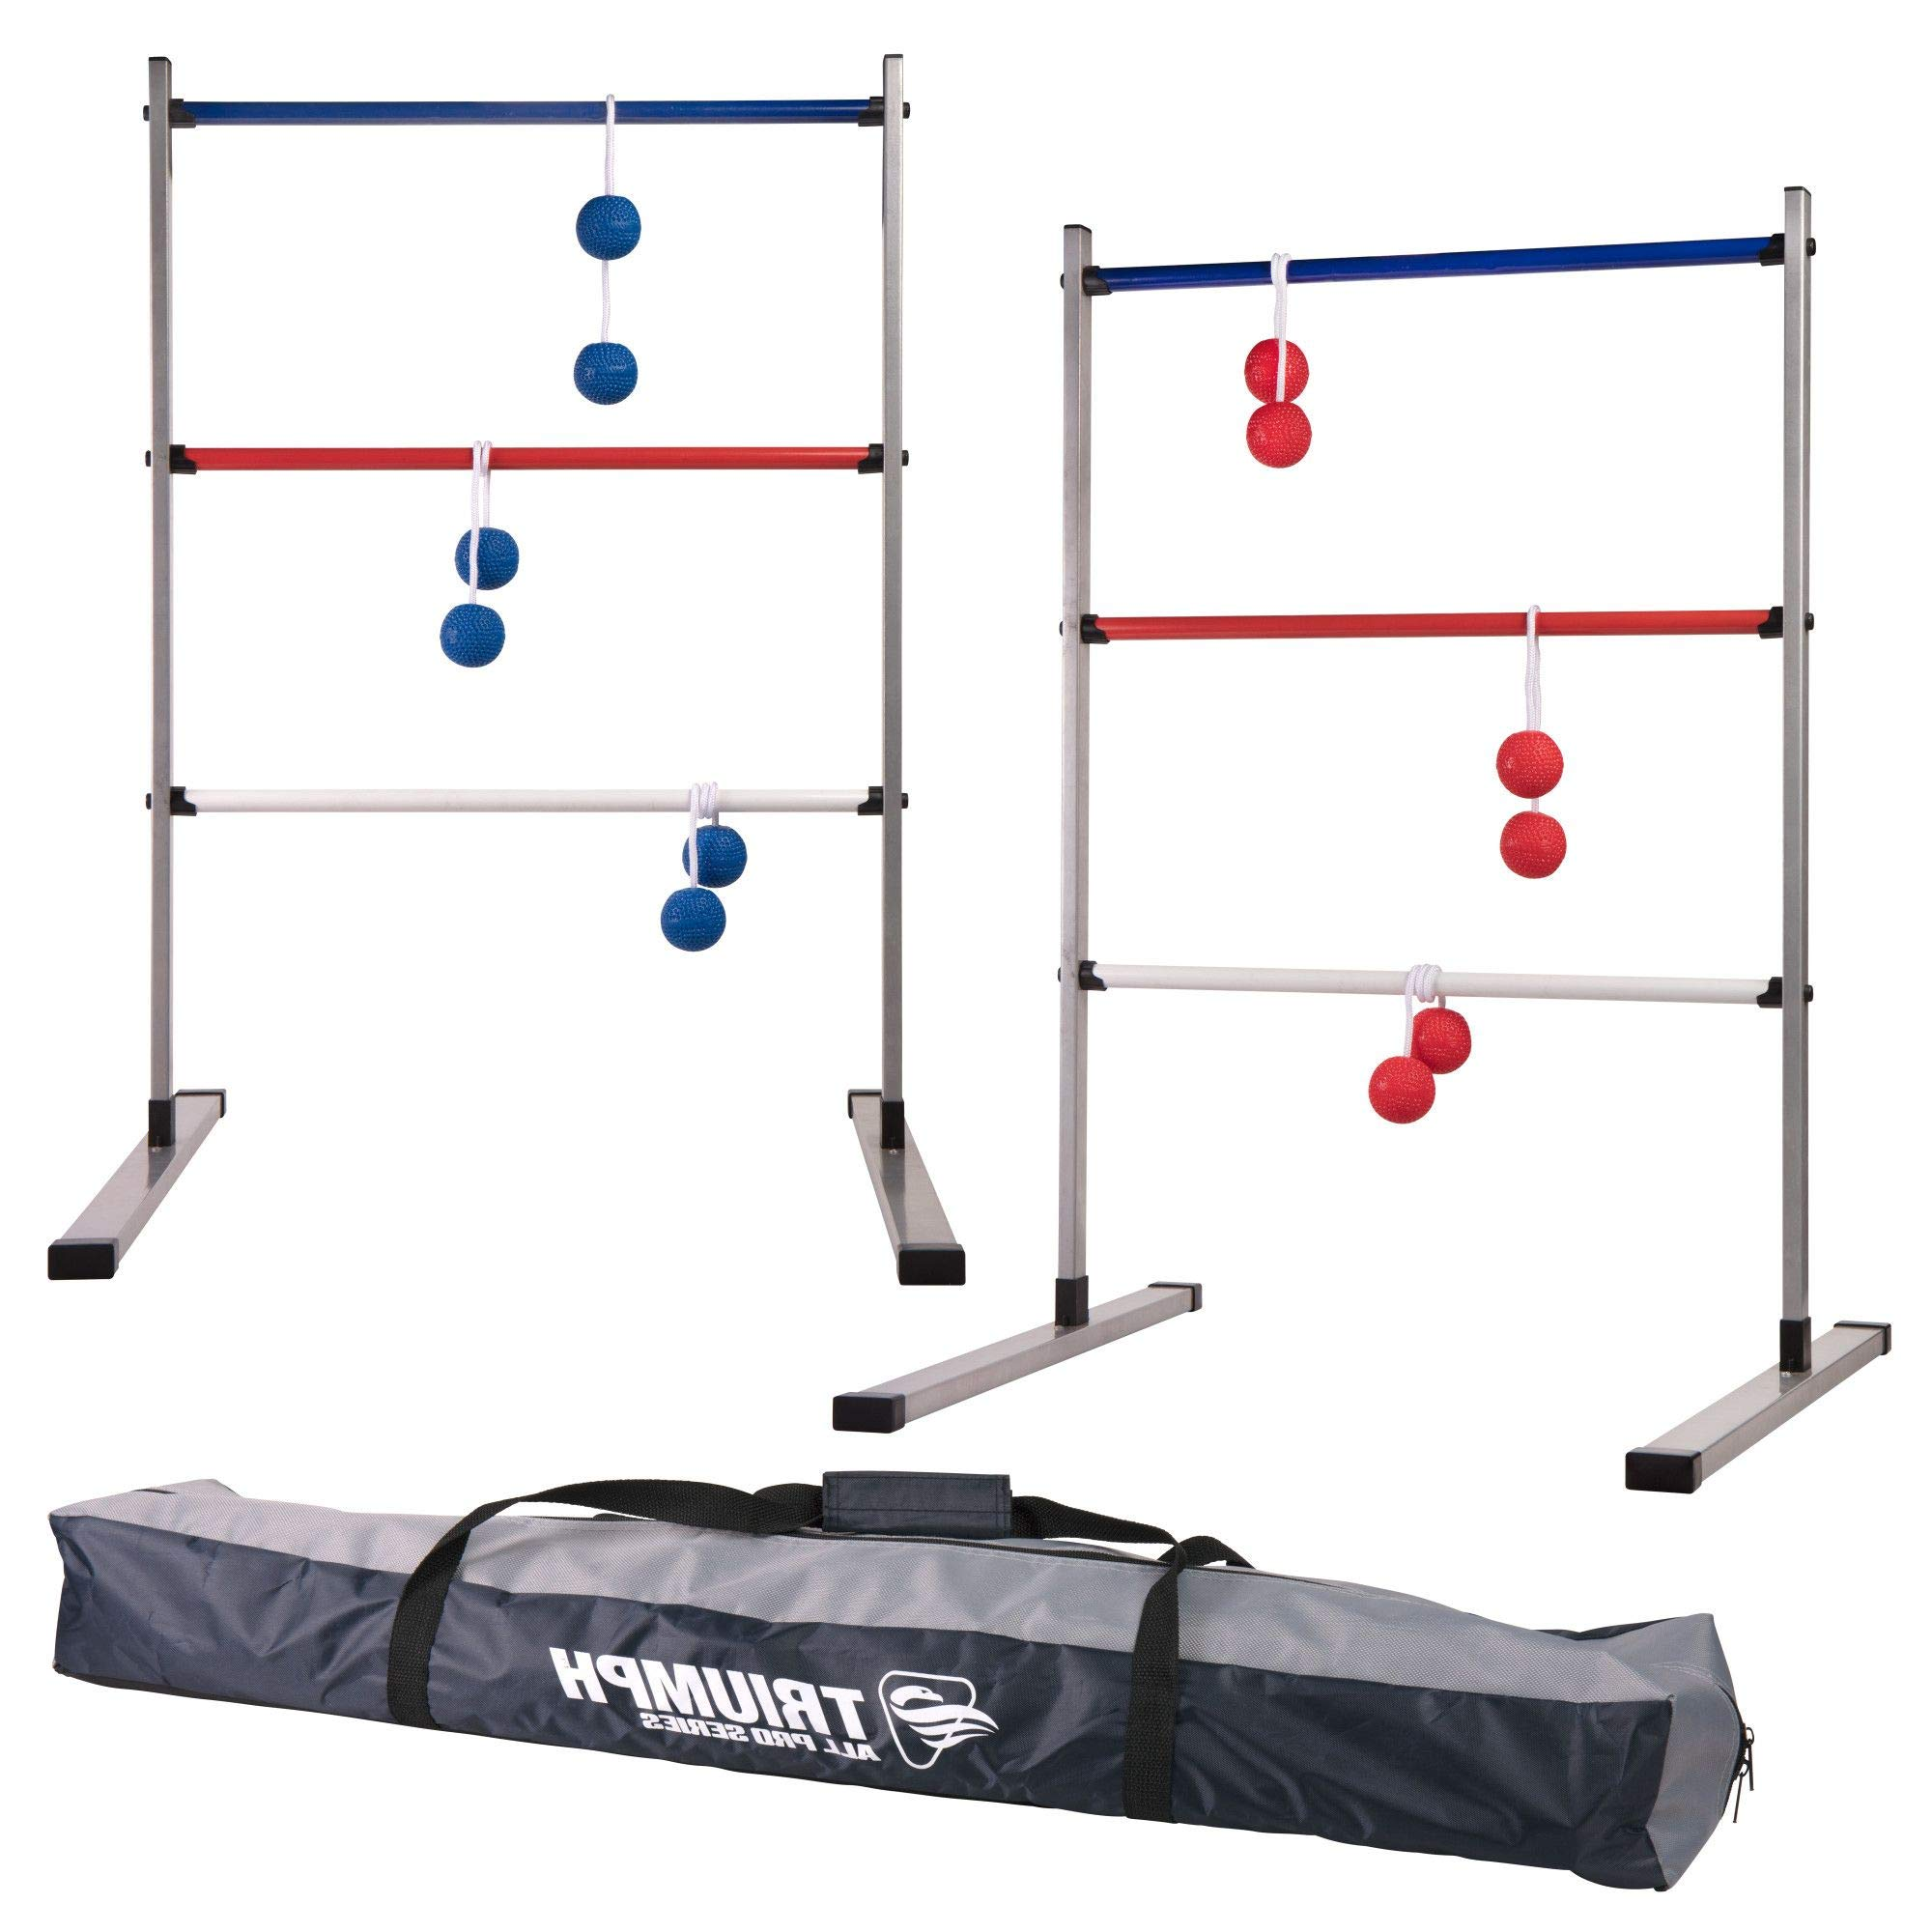 HealthyBells All Pro Series Press Fit Outdoor Ladderball Set Includes 6 Soft Ball Bolas and Durable Sport Carry Bag